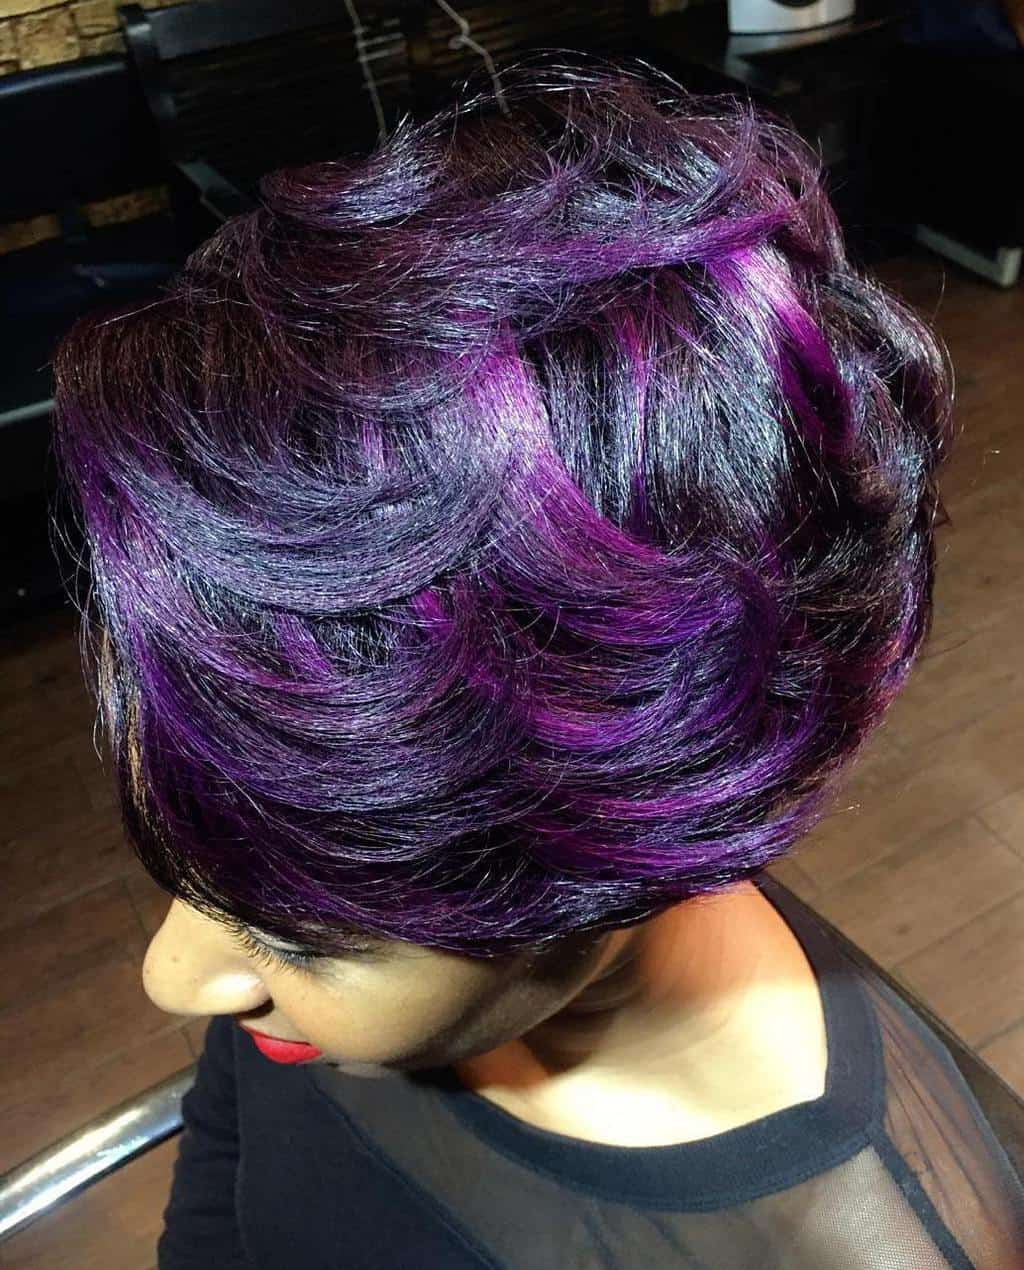 10 Brooding But Cool Black And Purple Hair Ideas Intended For Purple And Black Short Hairstyles (View 9 of 25)